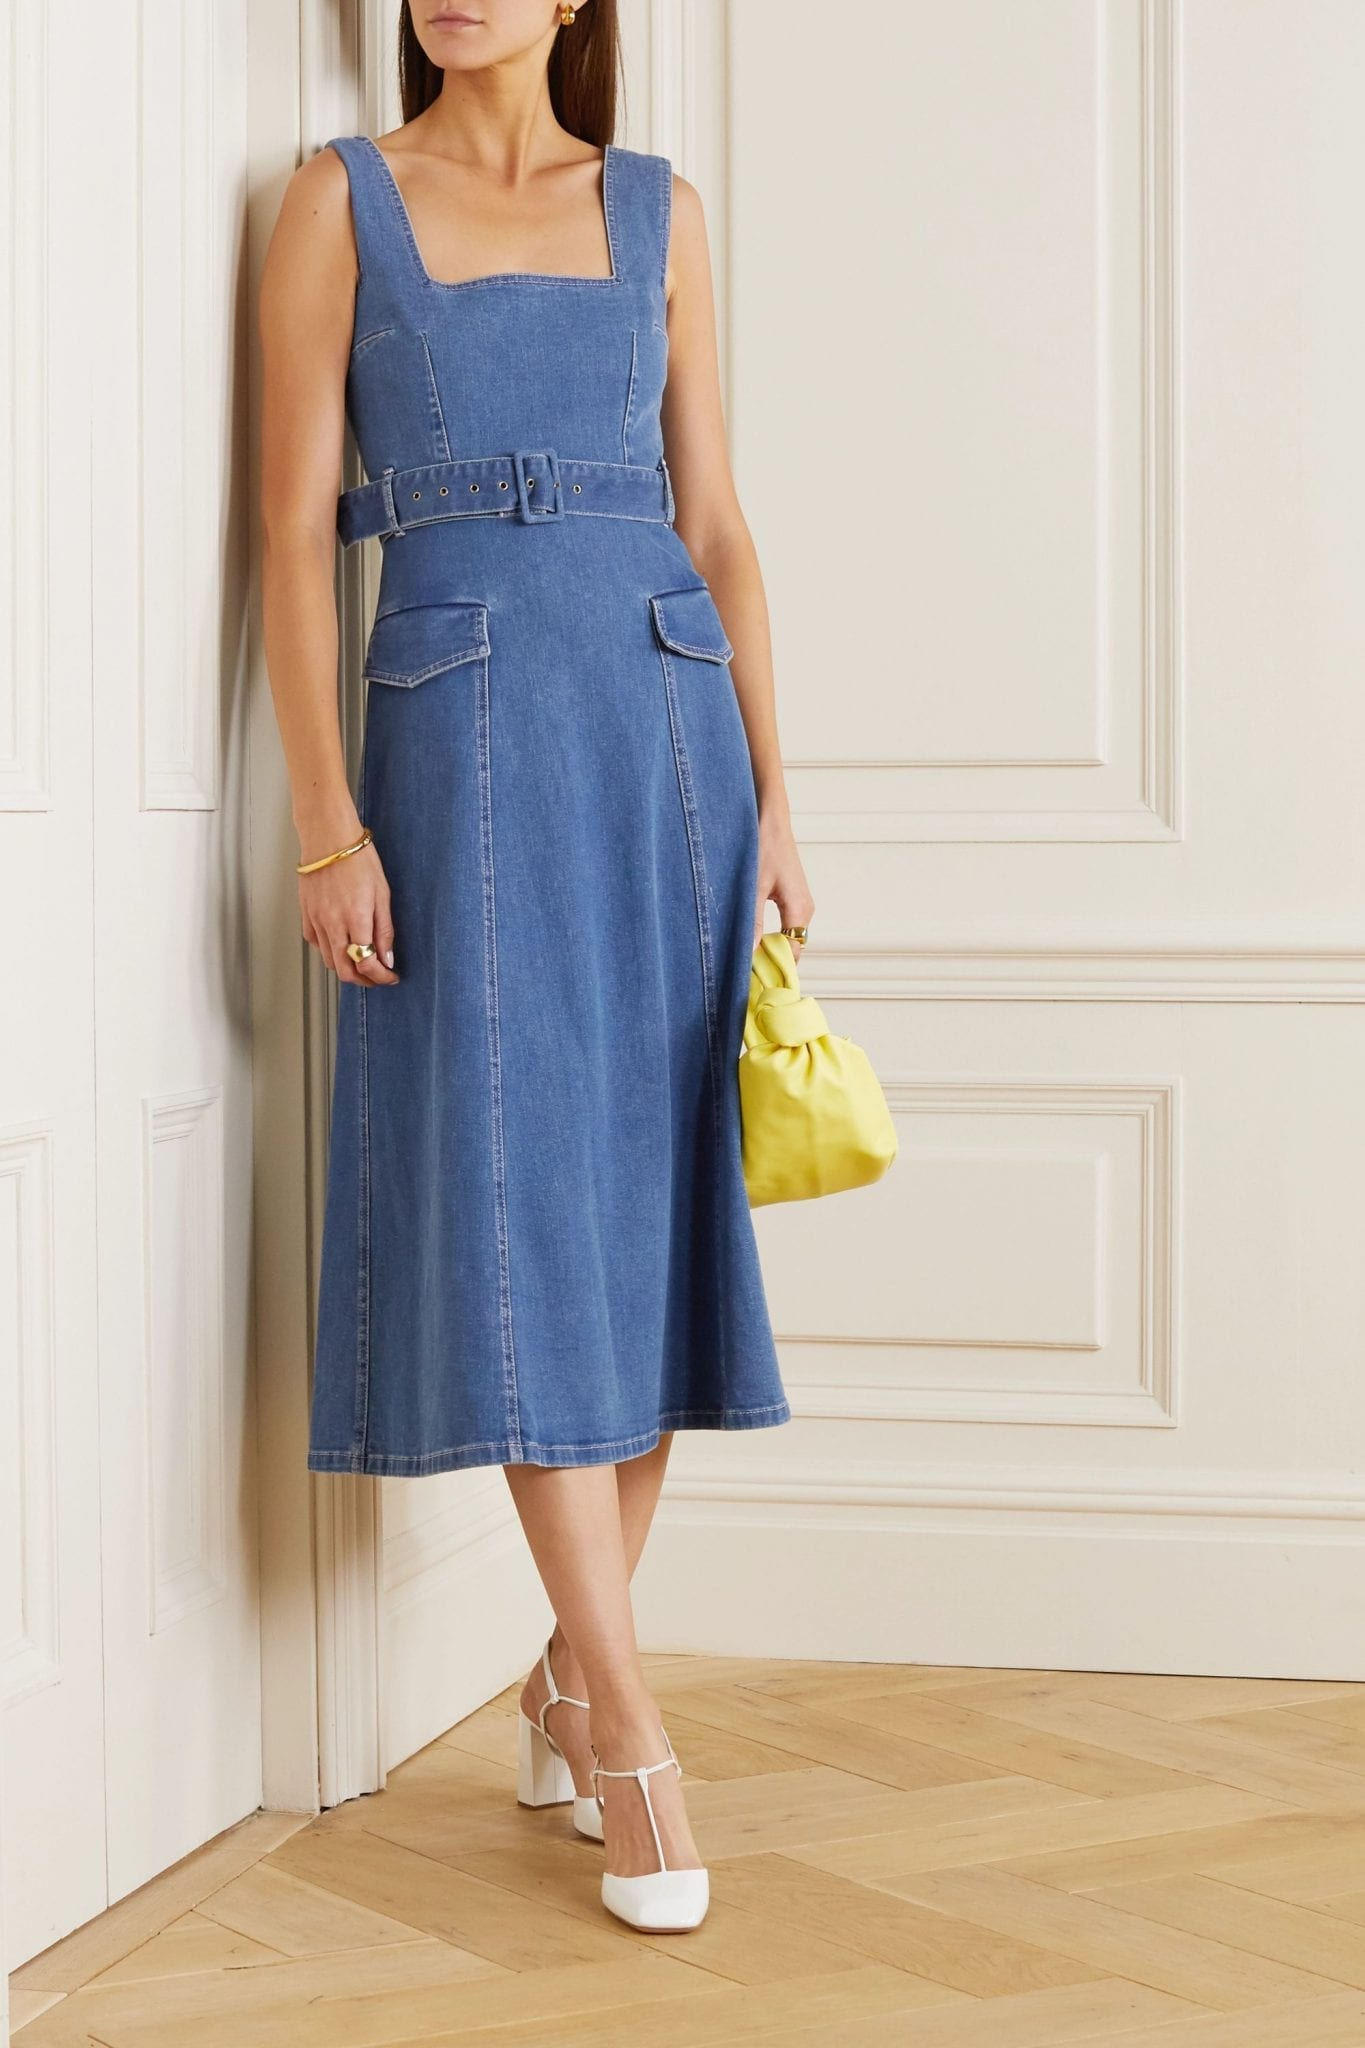 EMILIA WICKSTEAD Petra Belted Stretch-denim Midi Dress